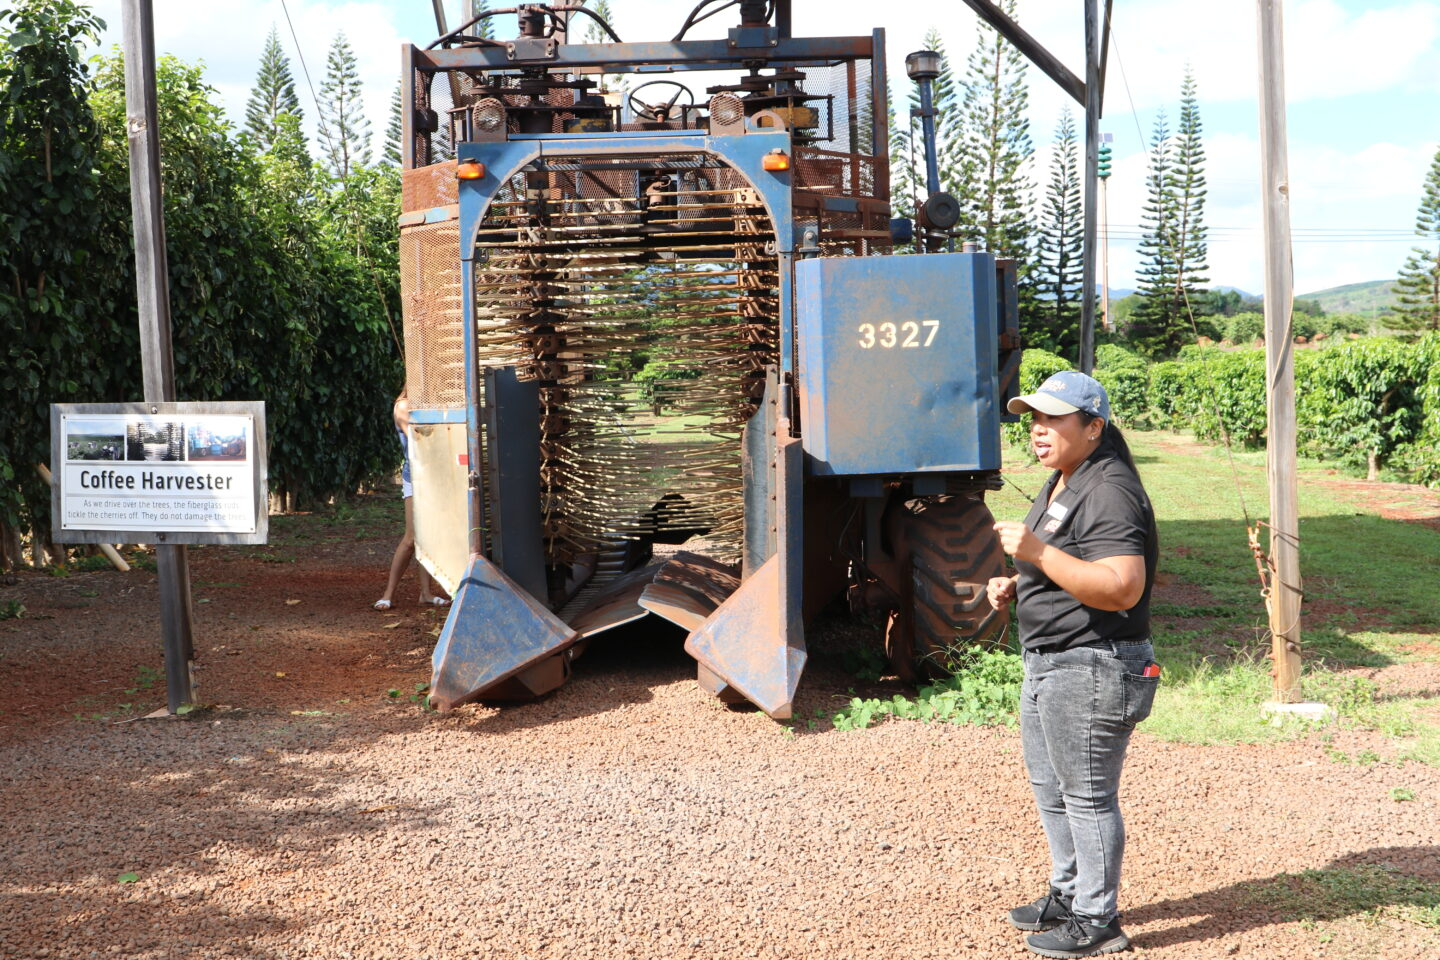 kauai coffee harvester machine